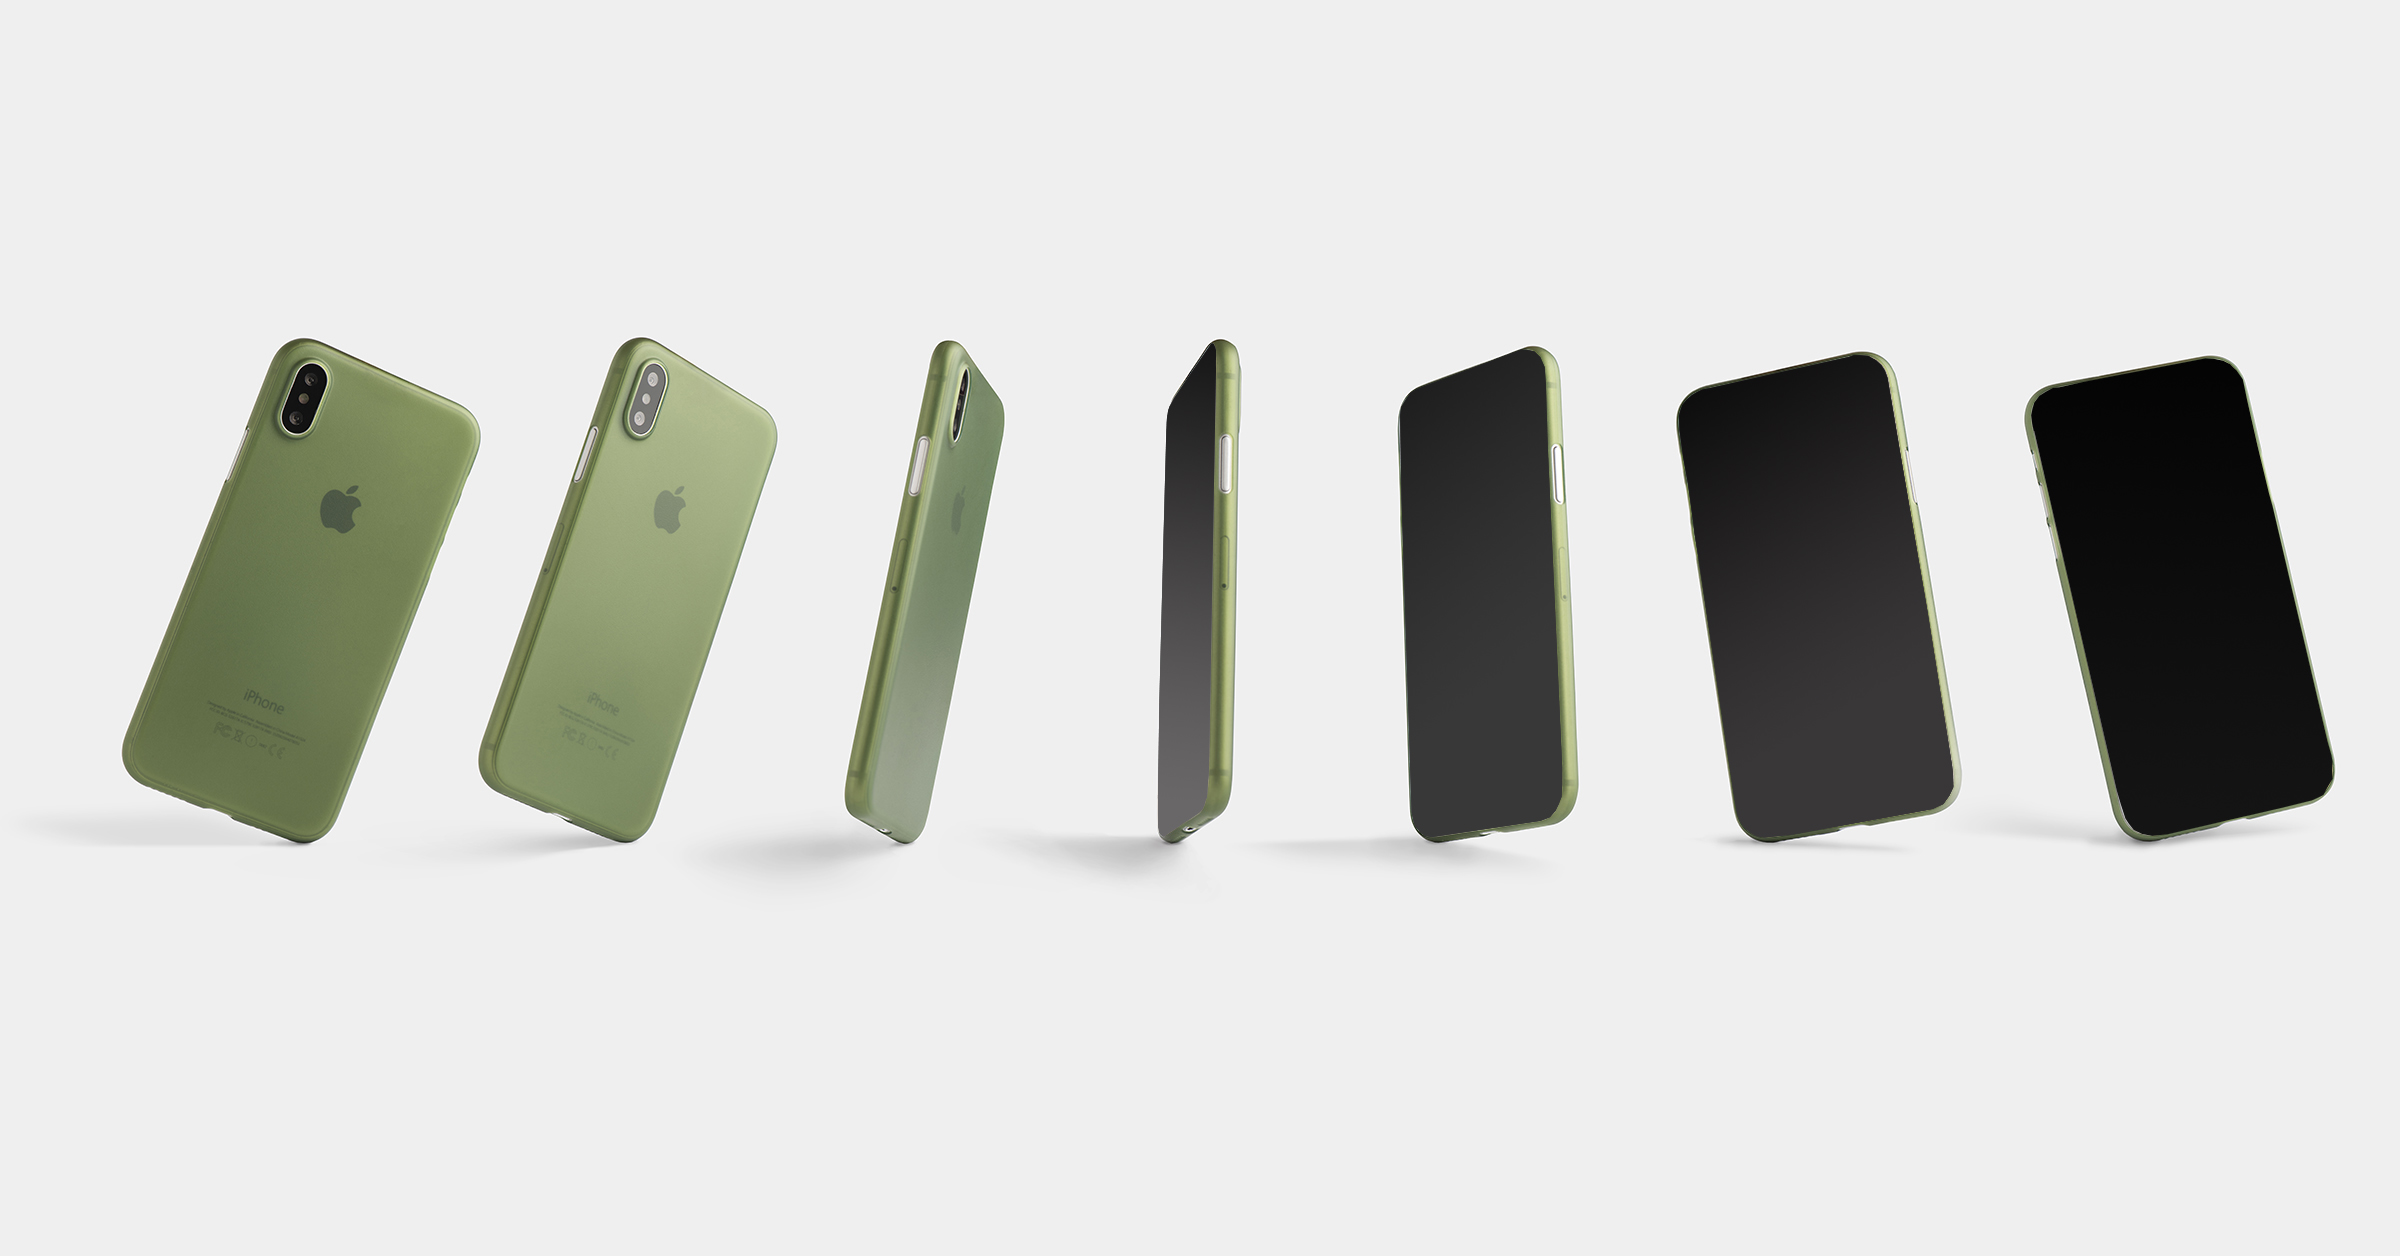 Totallee's super thin, branding-free iPhone 8/8 Plus and iPhone X cases ship today